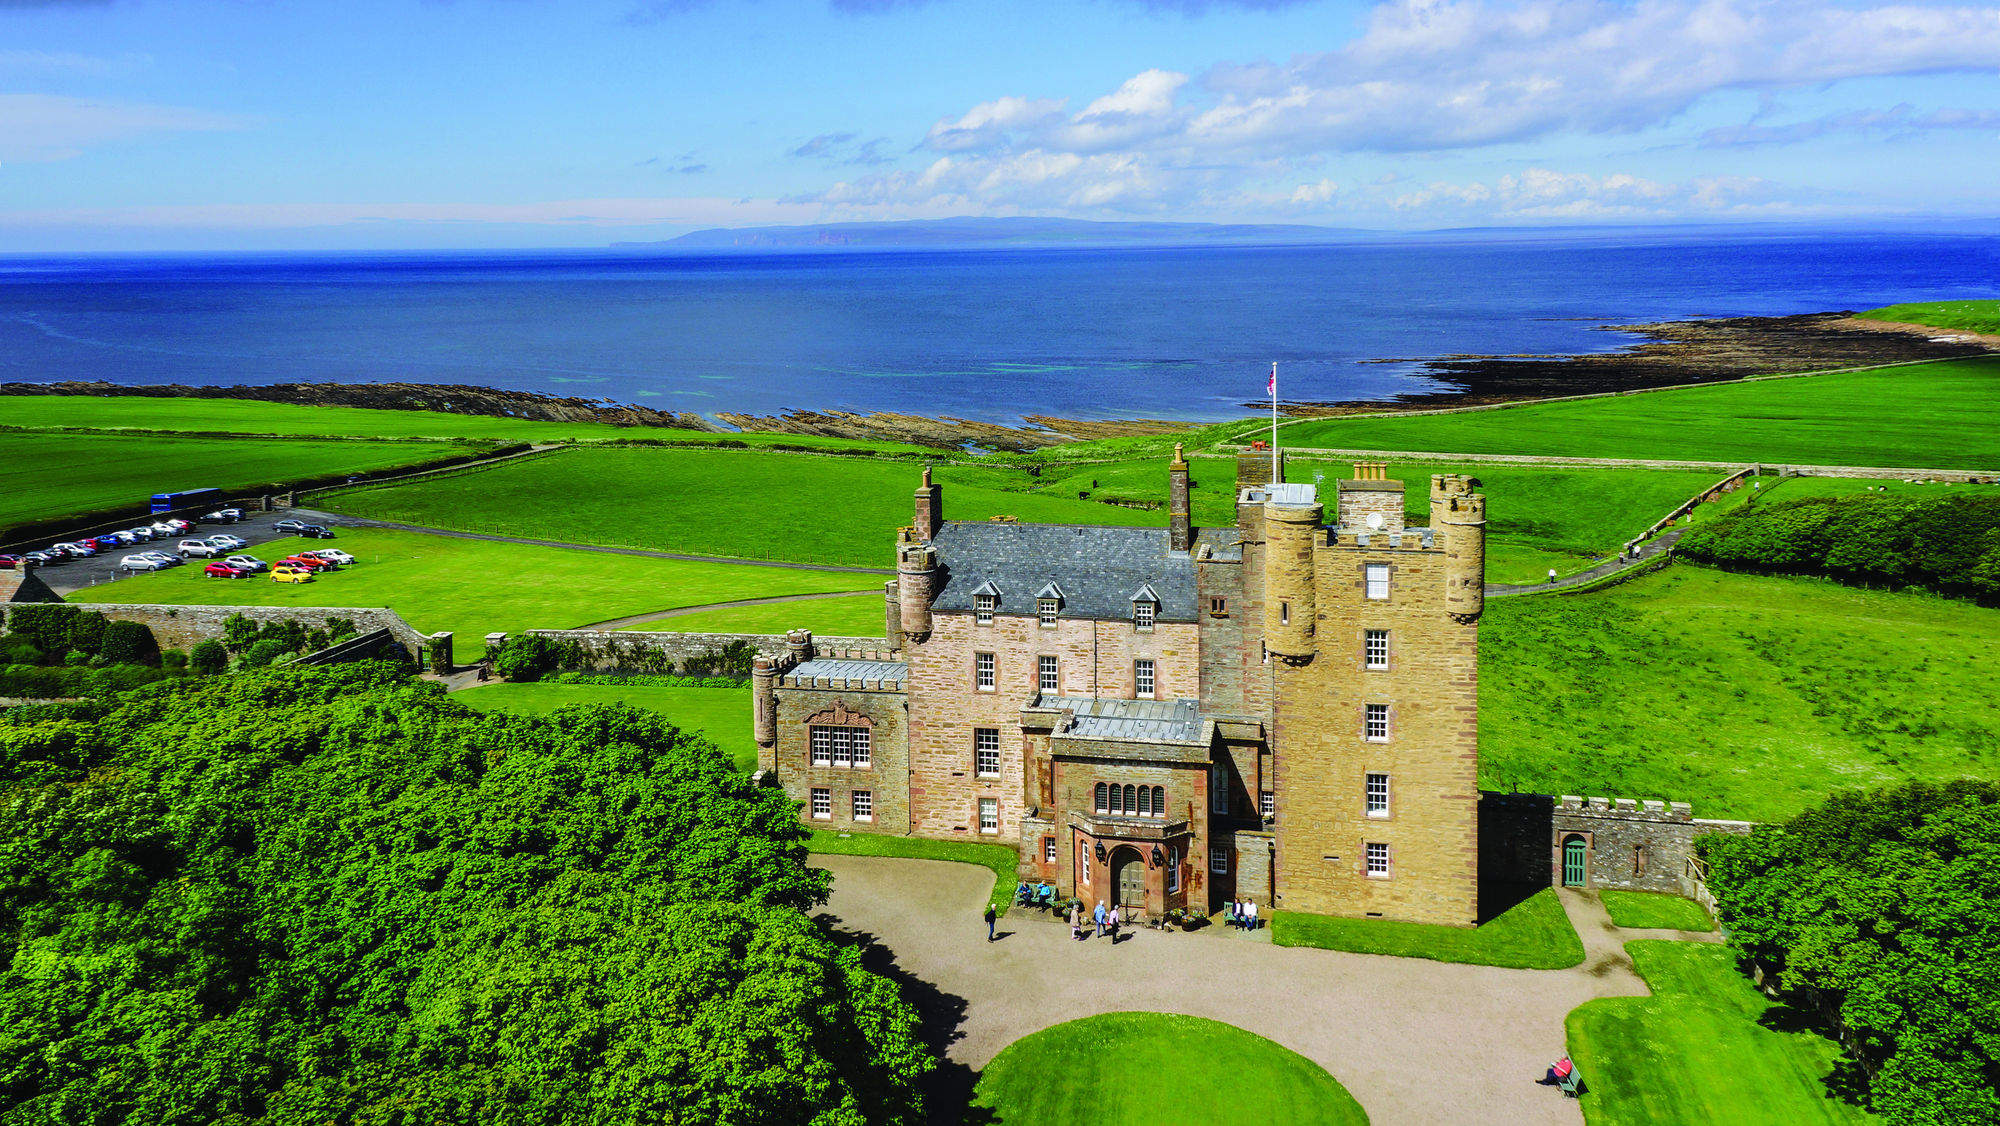 The Royal Heart Of Historic Caithness Castle Mey Was Property Queen Elizabeth